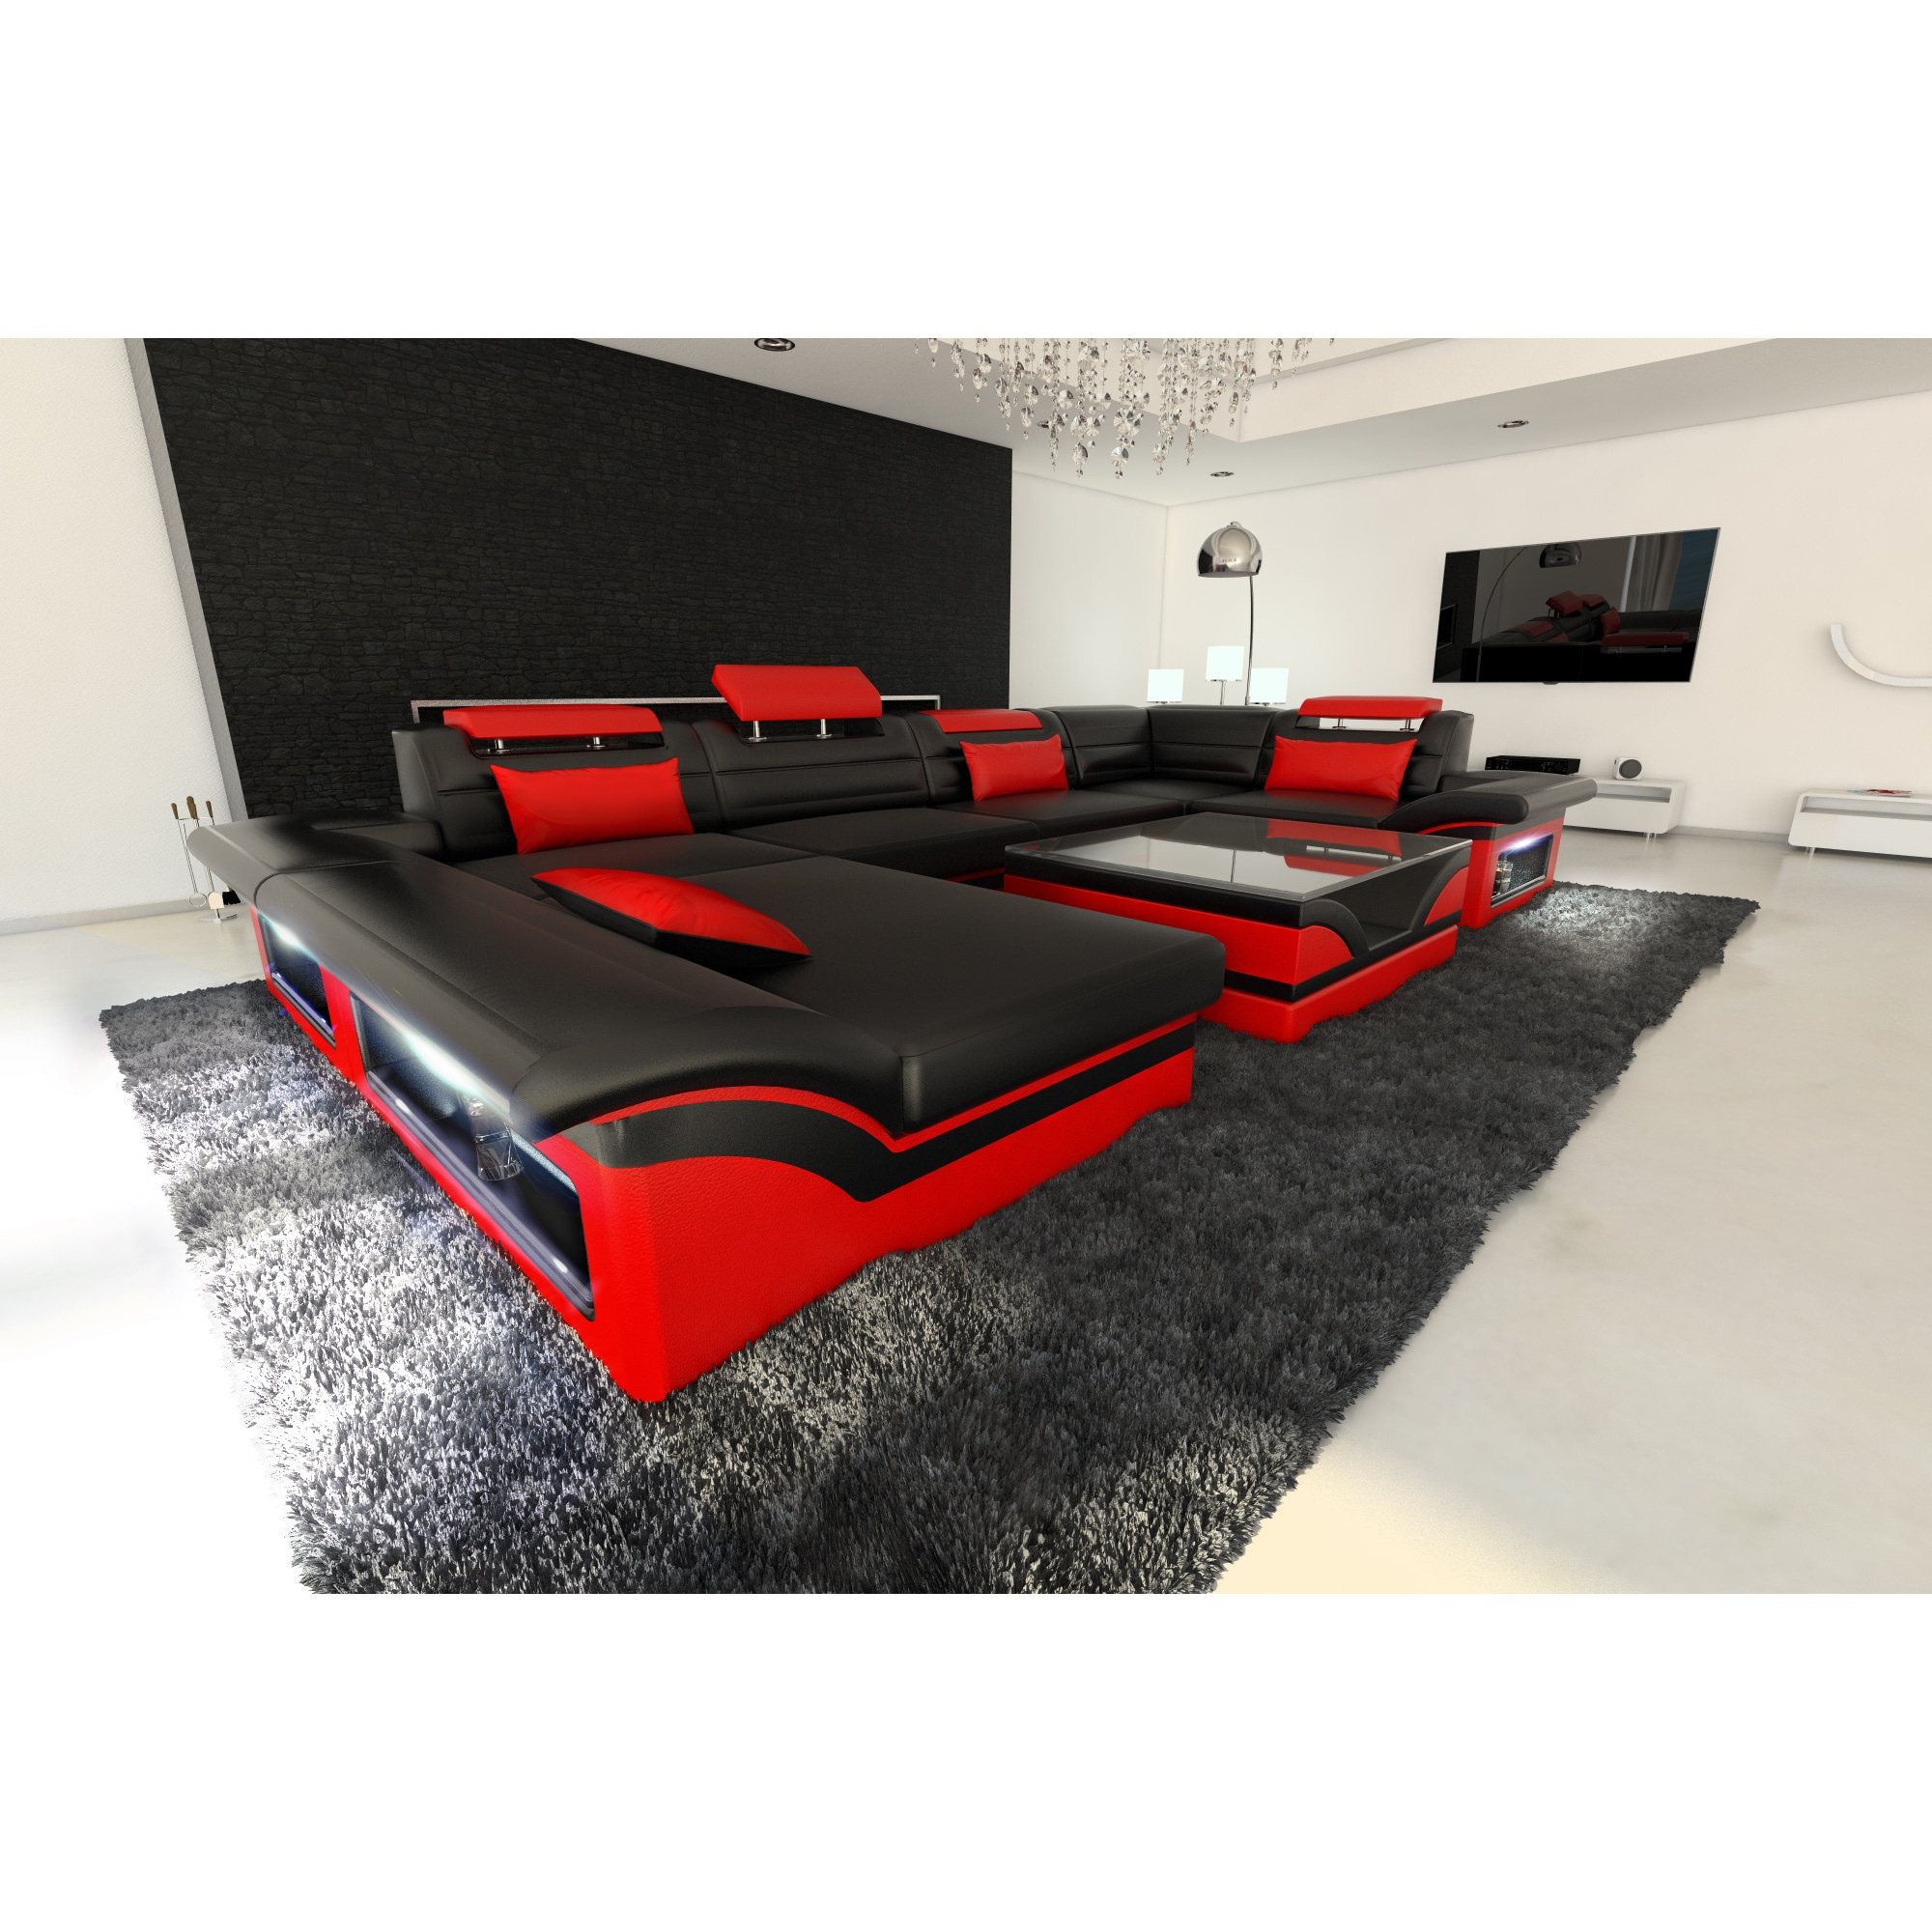 Xxl Sectional Sofa Jacksonville Led Lights U Shaped Led Sofa Get Our Modern Designed Led Coffee Table Modern Sofas